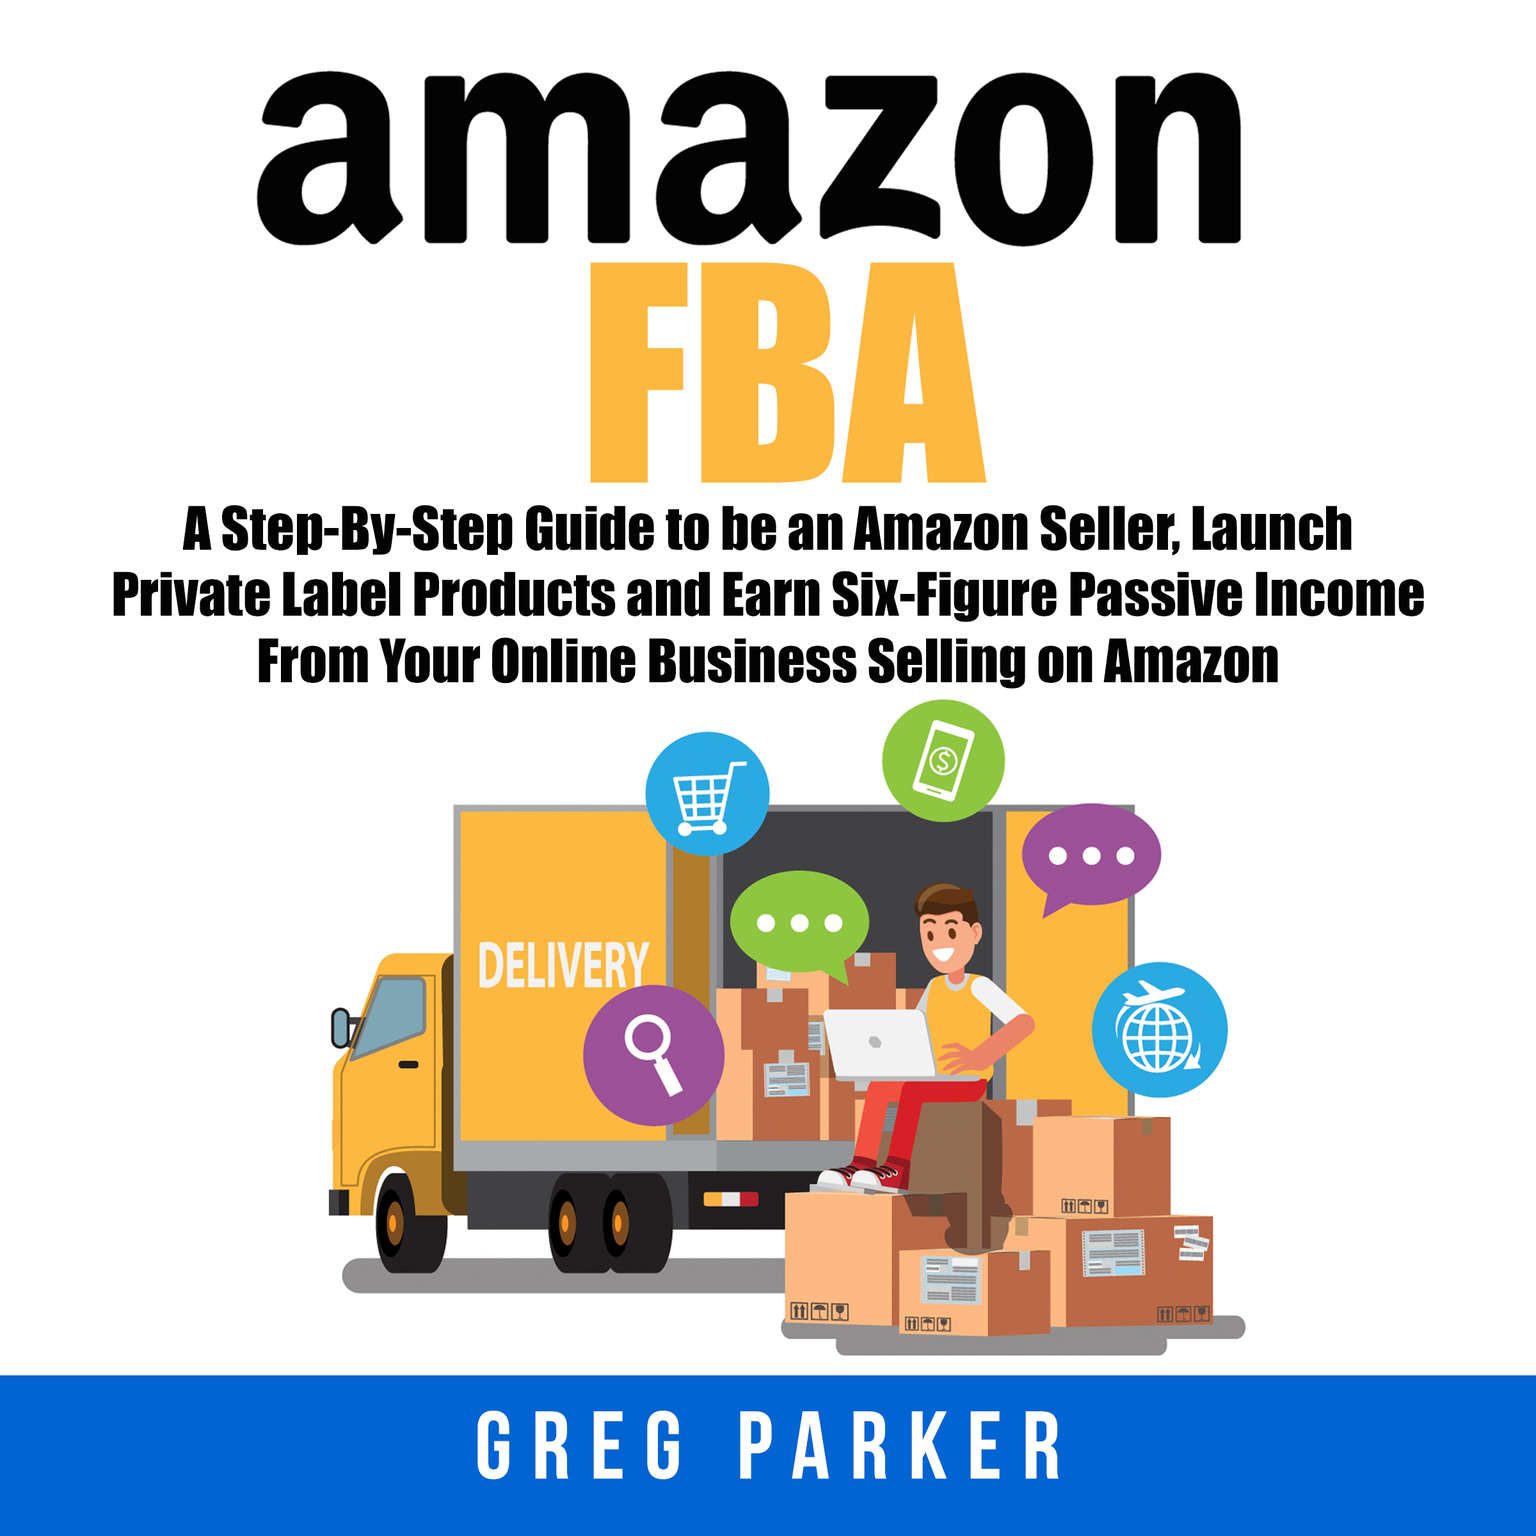 Amazon FBA: A Step-By-Step Guide to be an Amazon Seller, Launch Private Label Products and Earn Six-Figure Passive Income From Your Online Business Selling on Amazon Audiobook, by Greg Parker